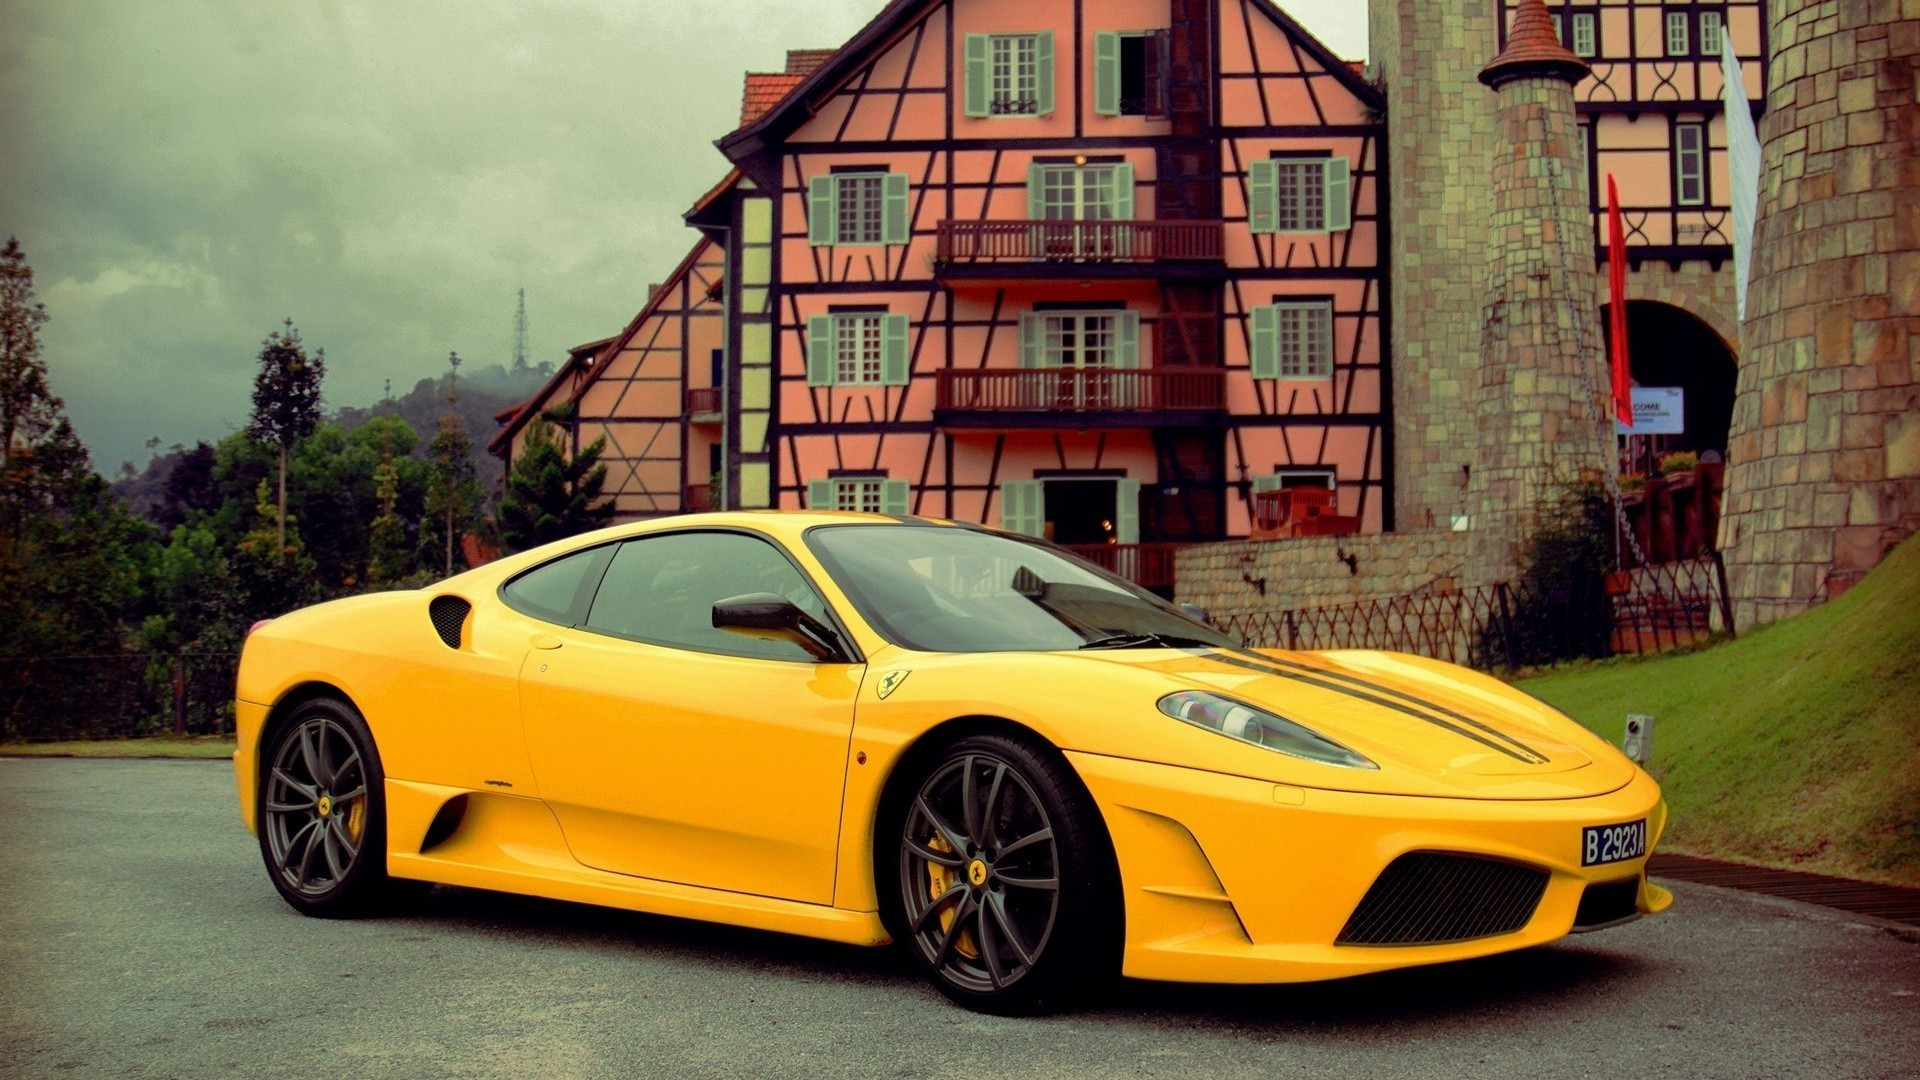 Ferrari Luxury Sport Car The Road Cars Engines Wallpaper